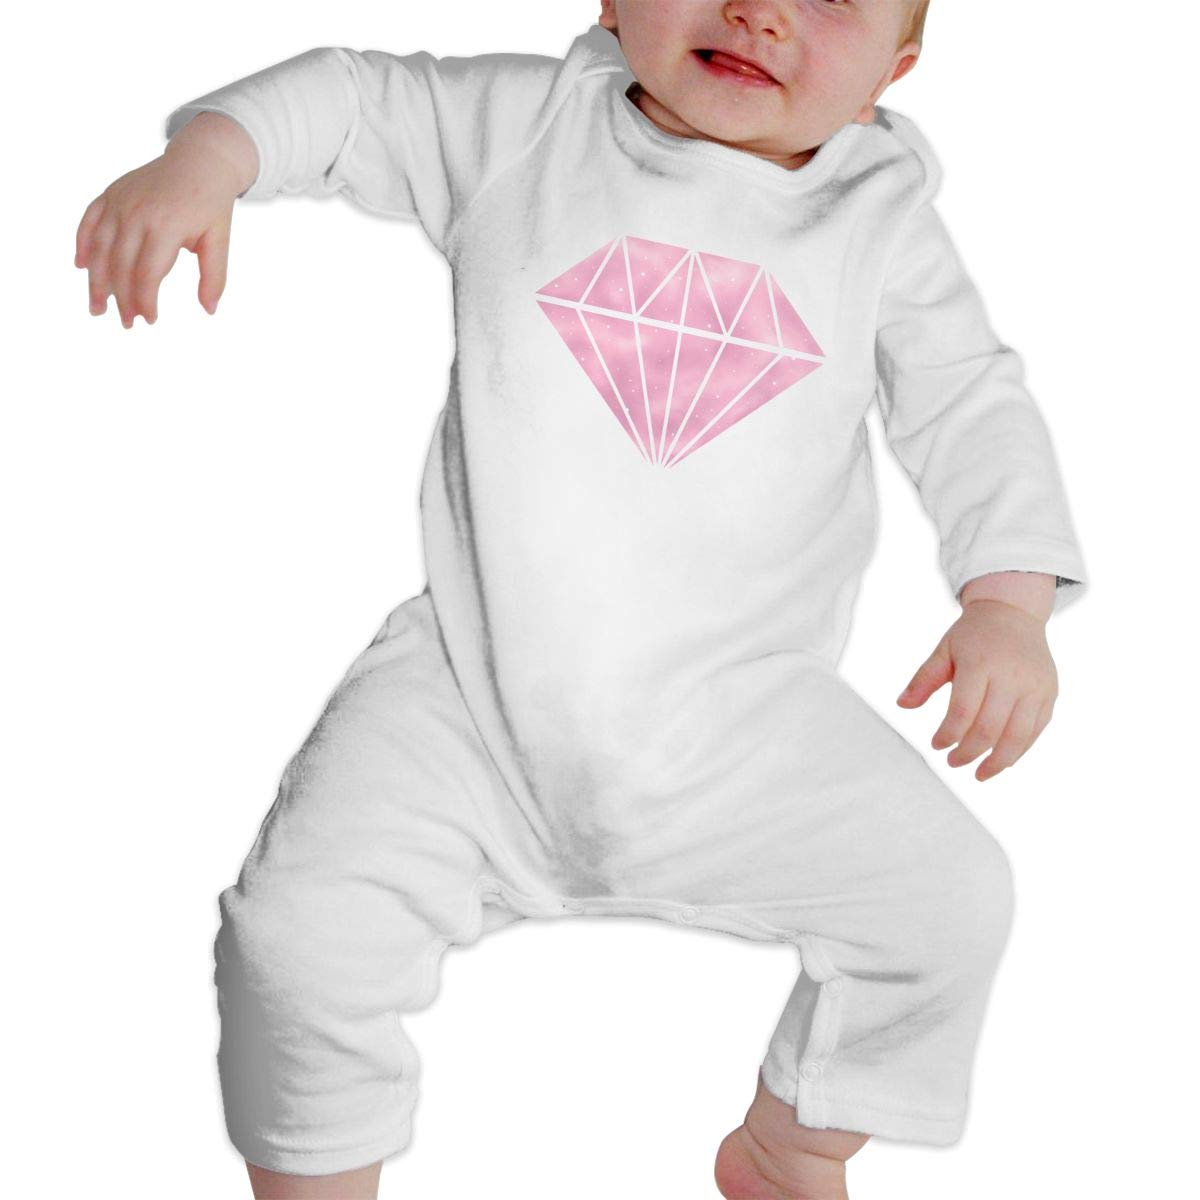 nordic runes Diamonds Baby Onesies Toddler Baby Girl//Boy Unisex Clothes Romper Jumpsuit Bodysuit One Piece